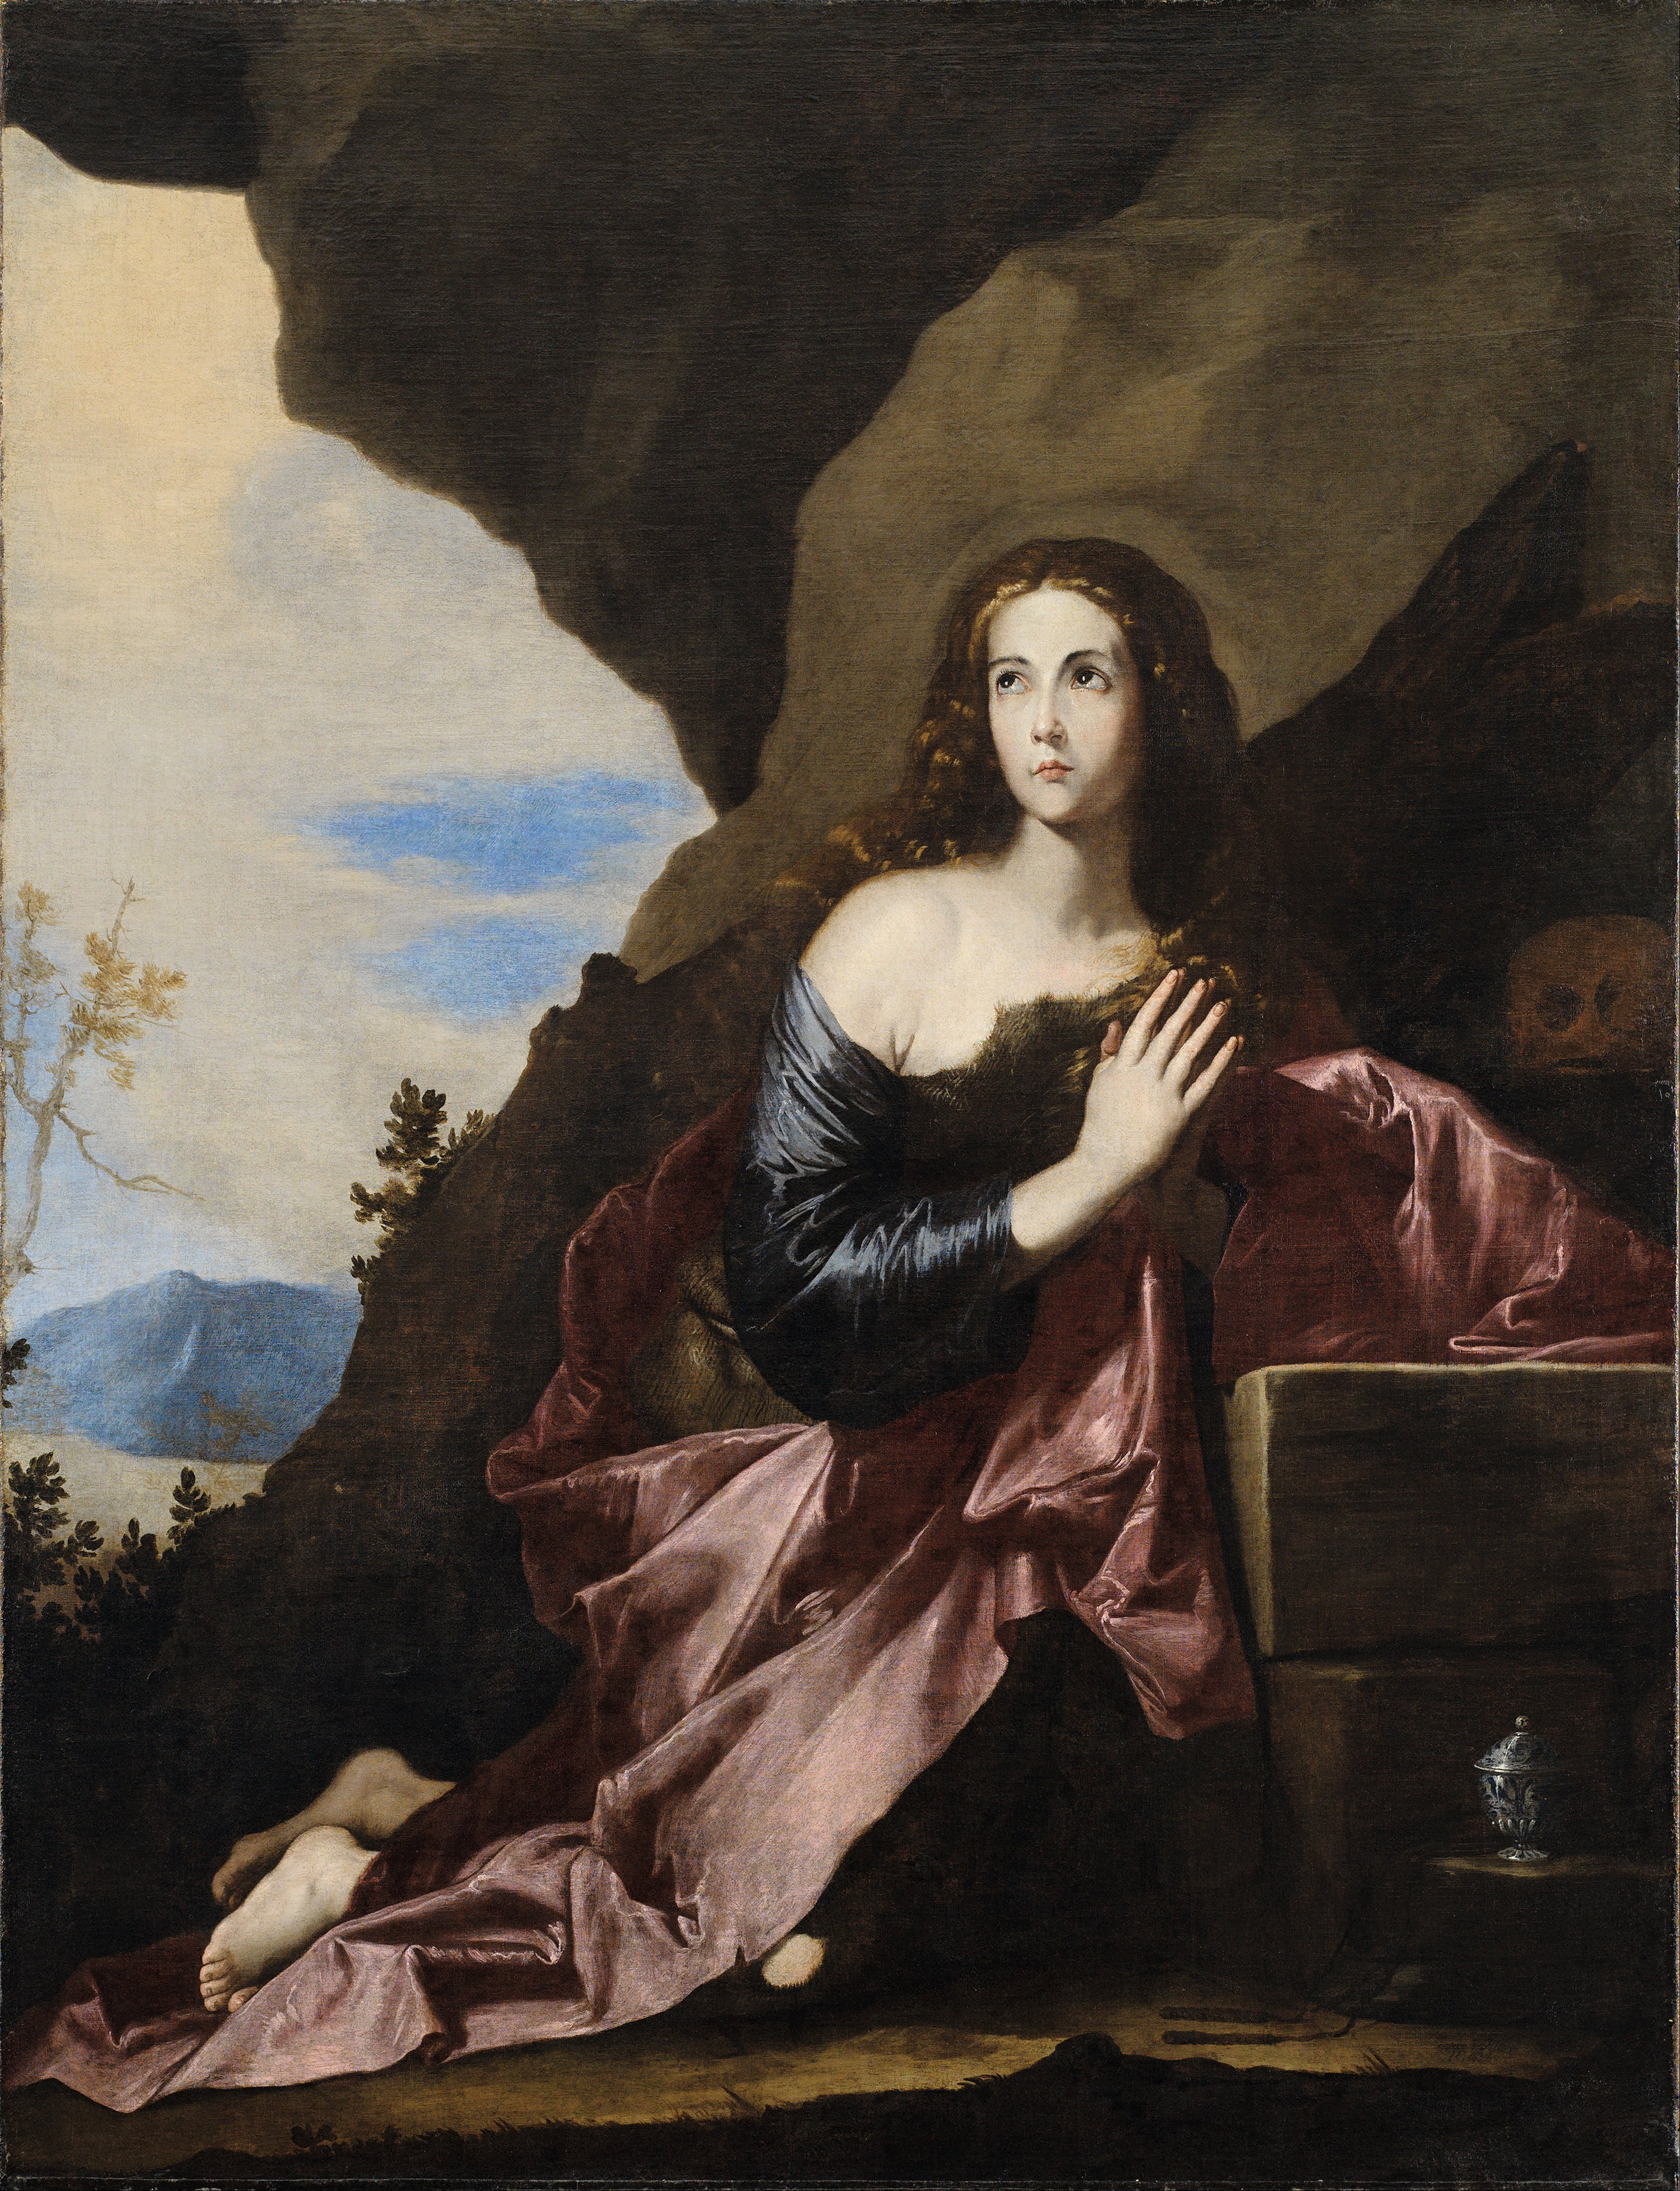 Mary Magdalene: 5 Things You Should Know